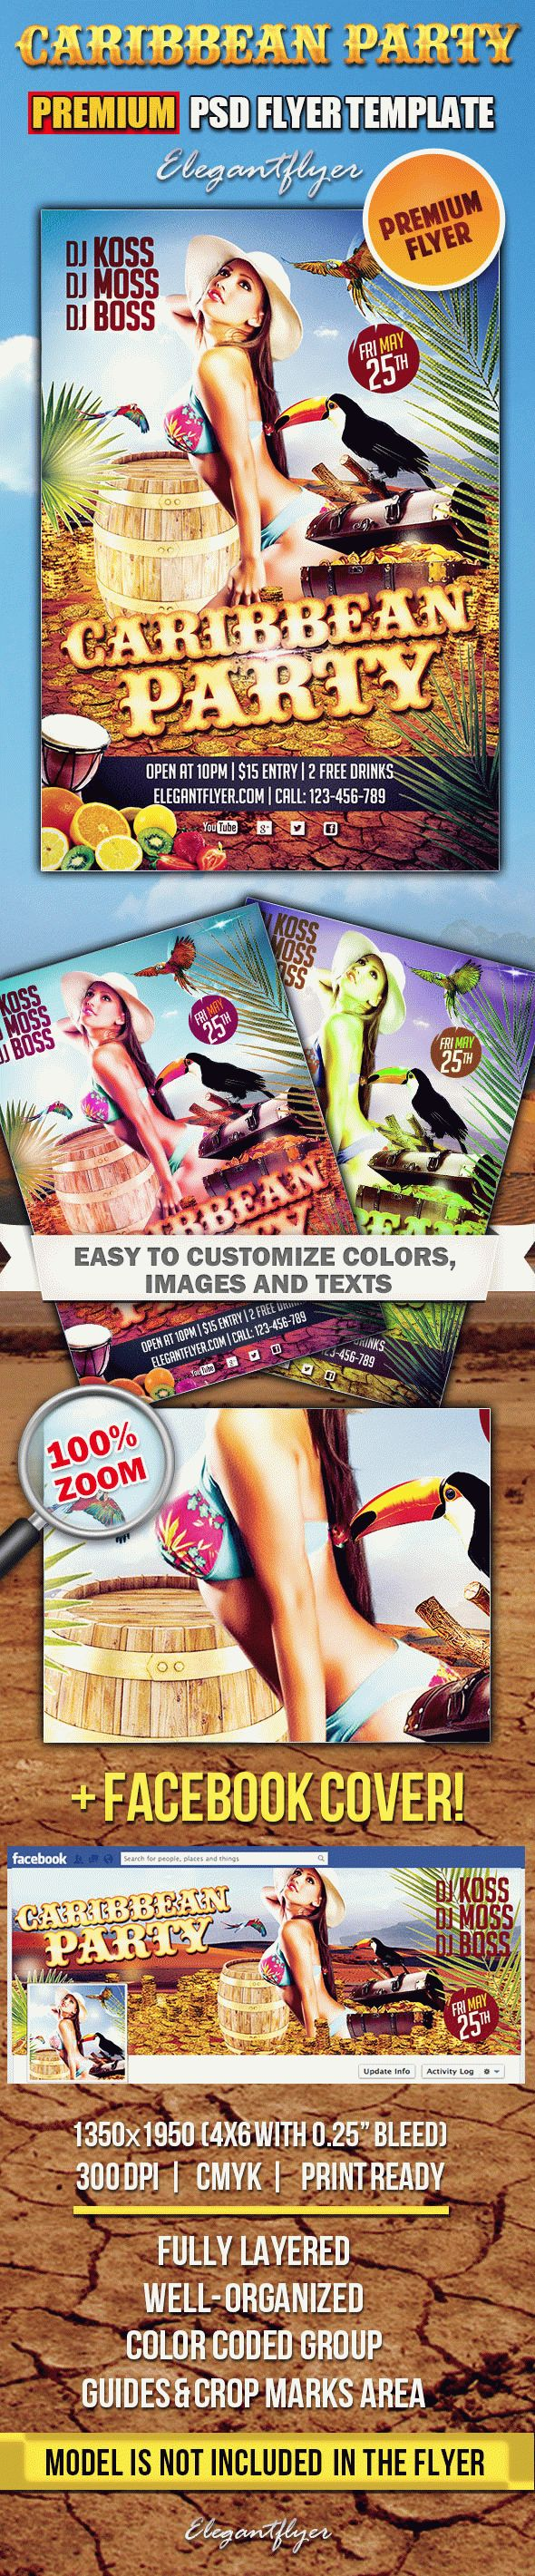 Caribbean Party – Premium Club flyer PSD Template + Facebook Cover